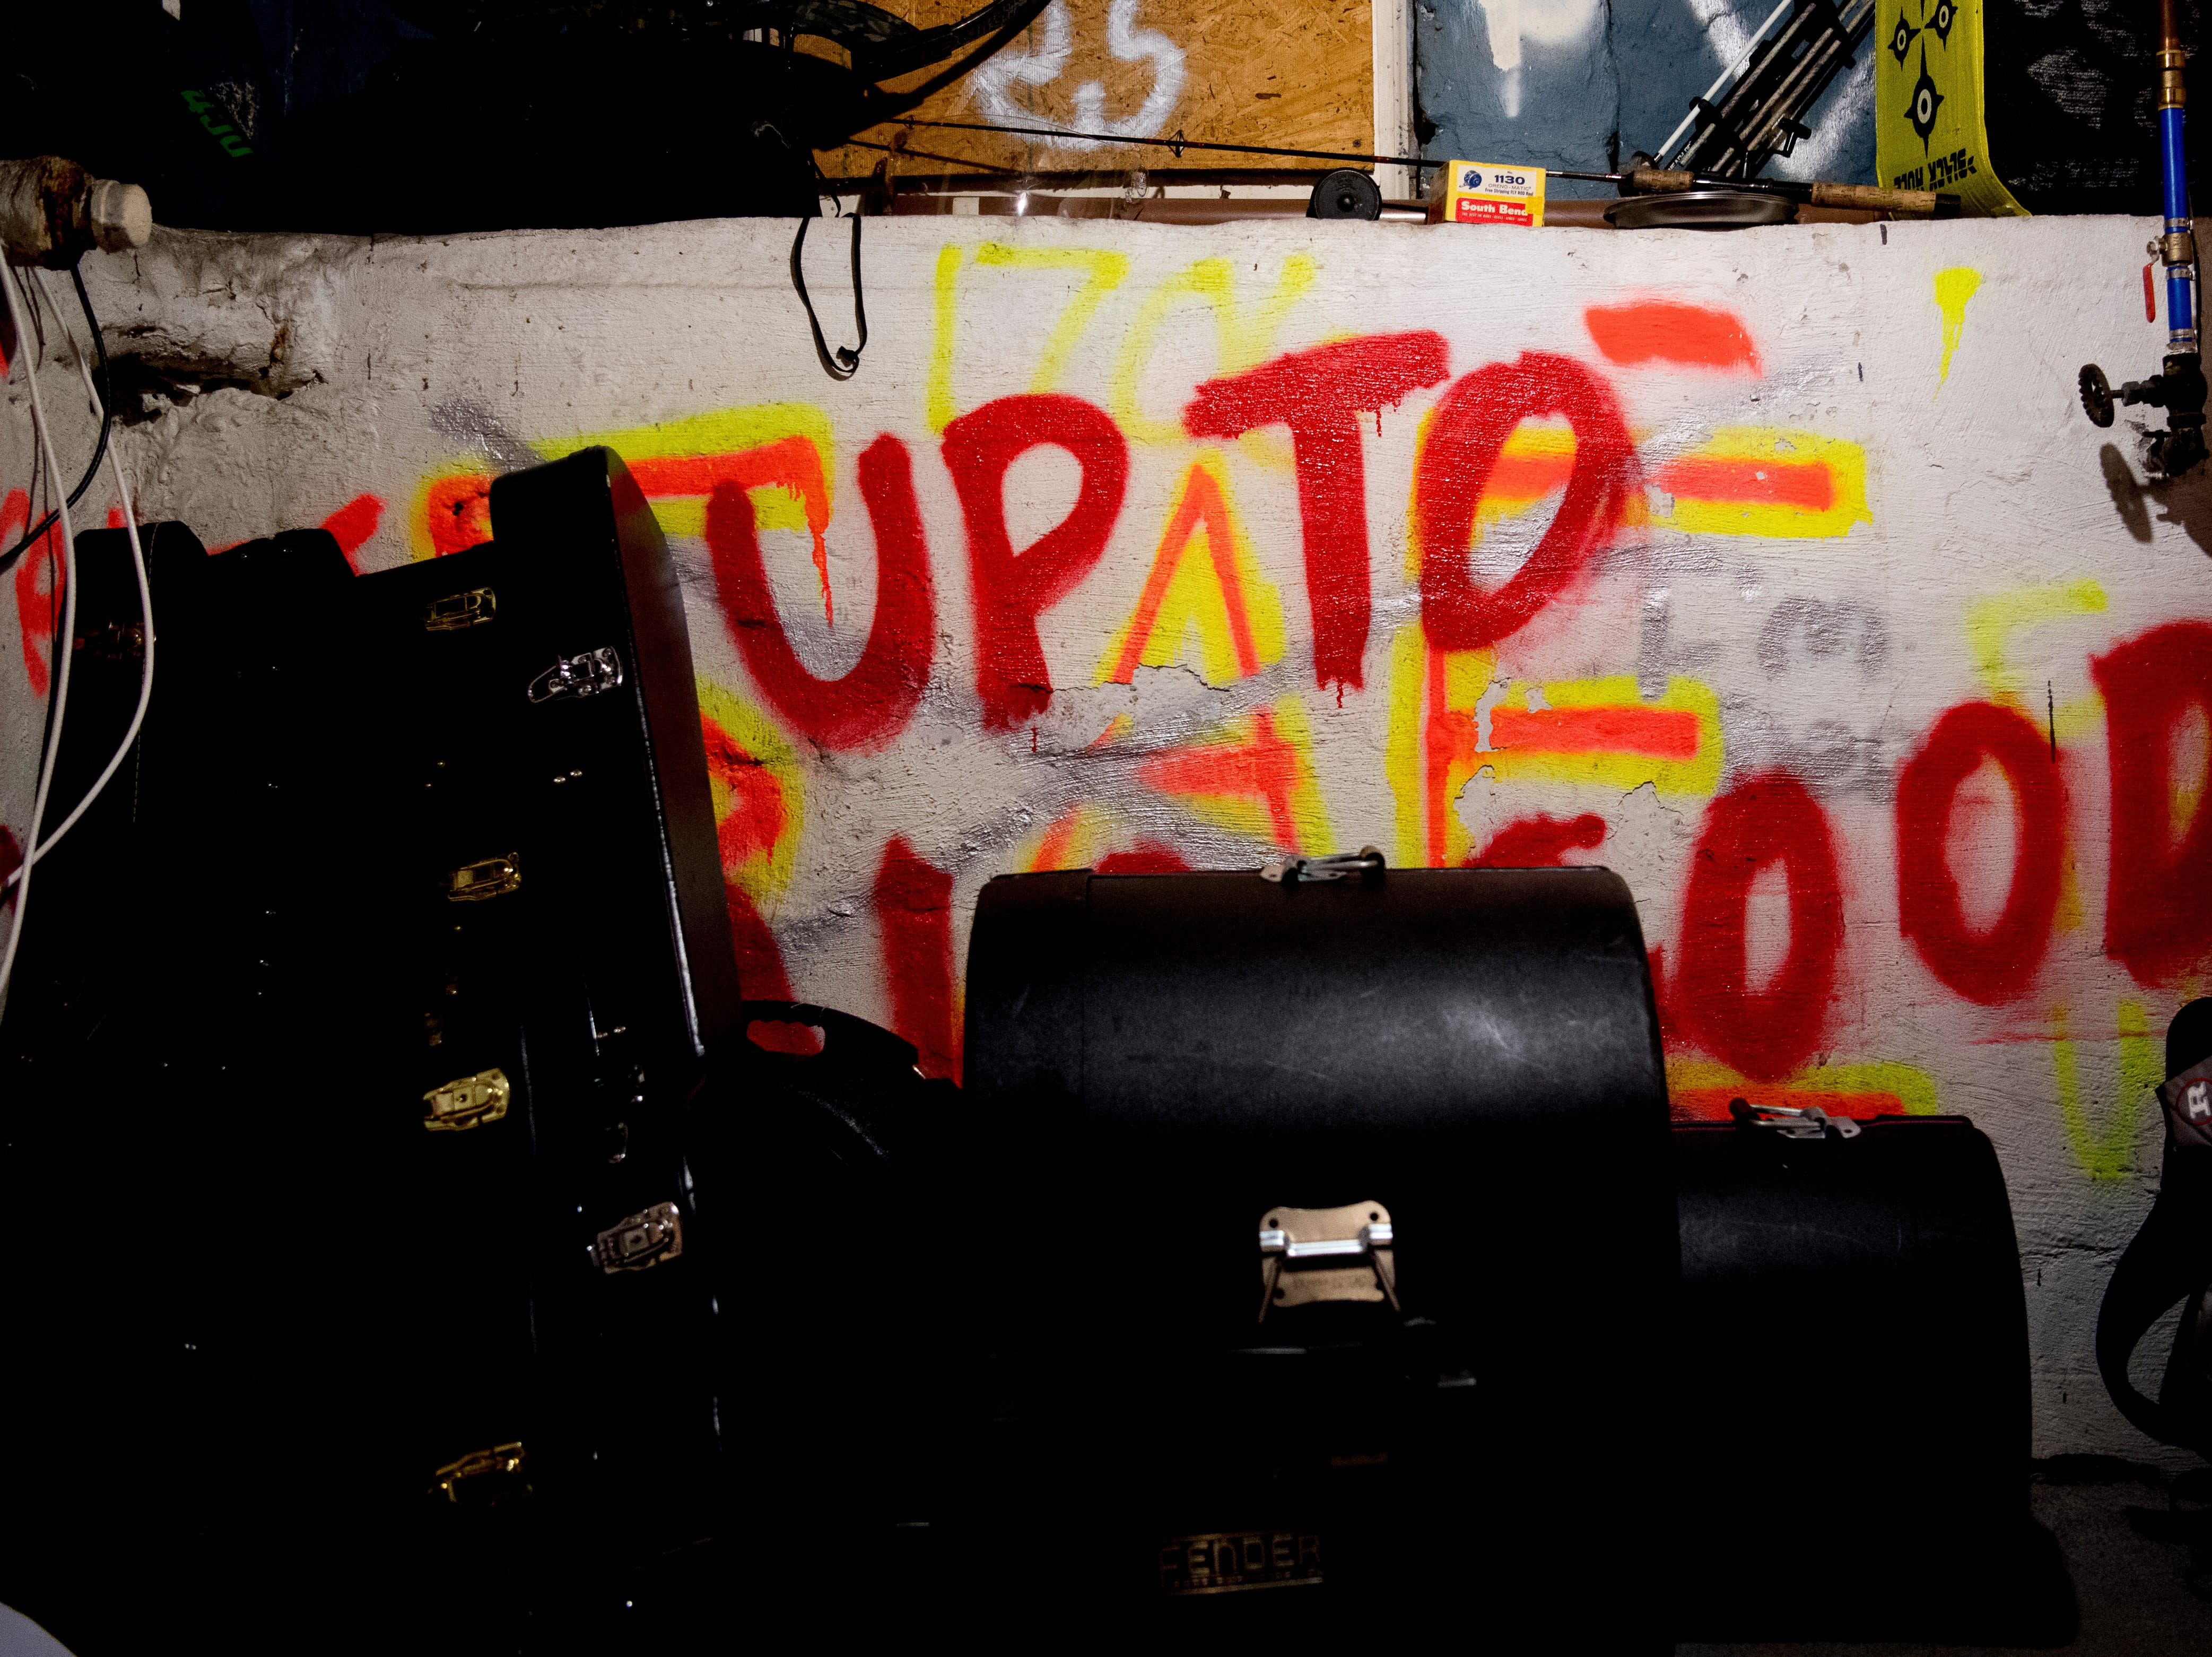 Spray paint decorates the walls of The Basement at 1706 Highland Ave. in Knoxville, Tennessee on Wednesday, January 30, 2019. The new venue is aiming to host local and national talent as well as arts and crafts.